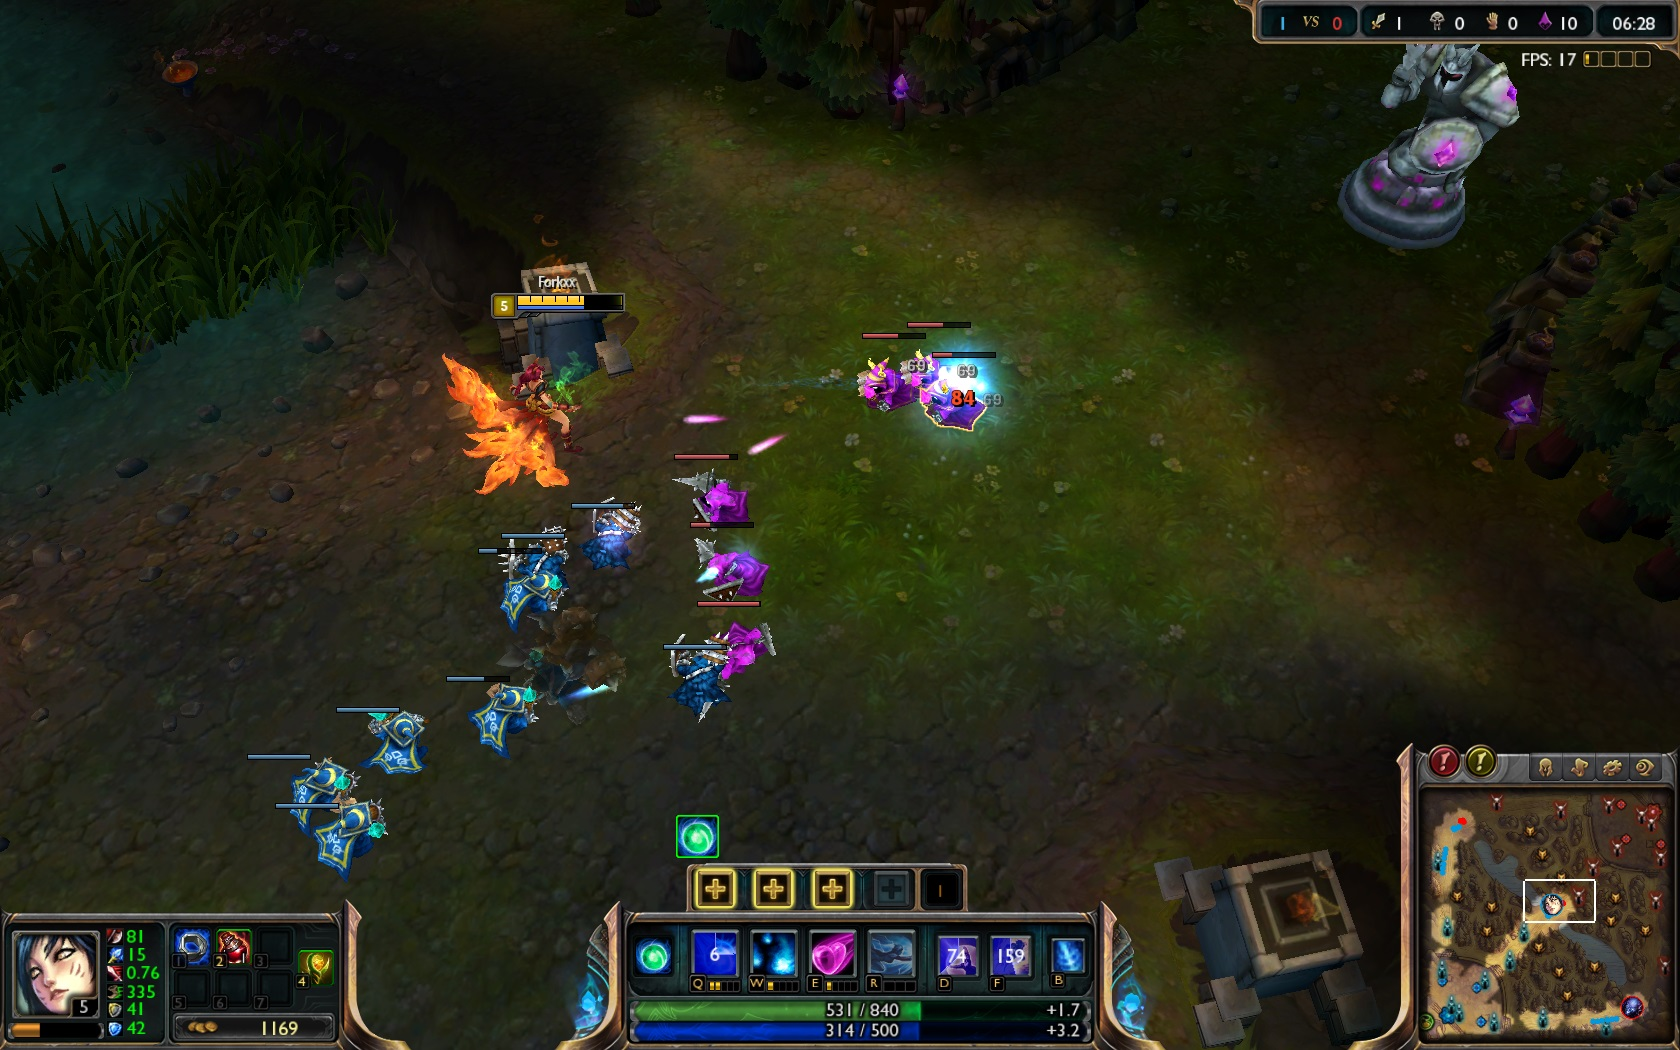 League of Legends - Imagem 1 do software